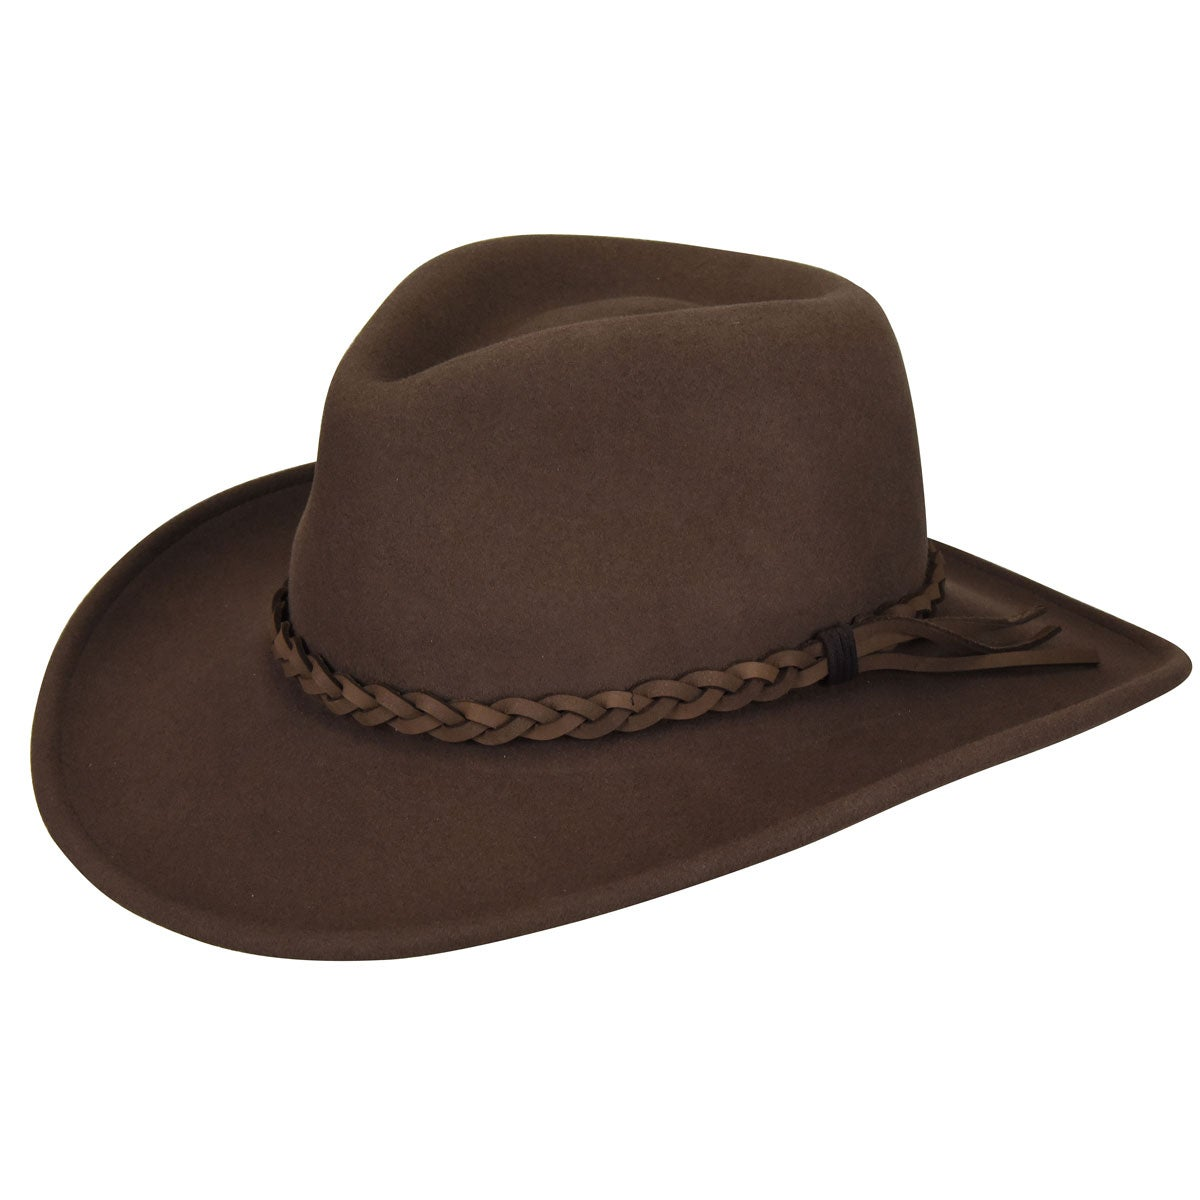 Wind River Wind River by Bailey Switchback Outback Hat in Pecan